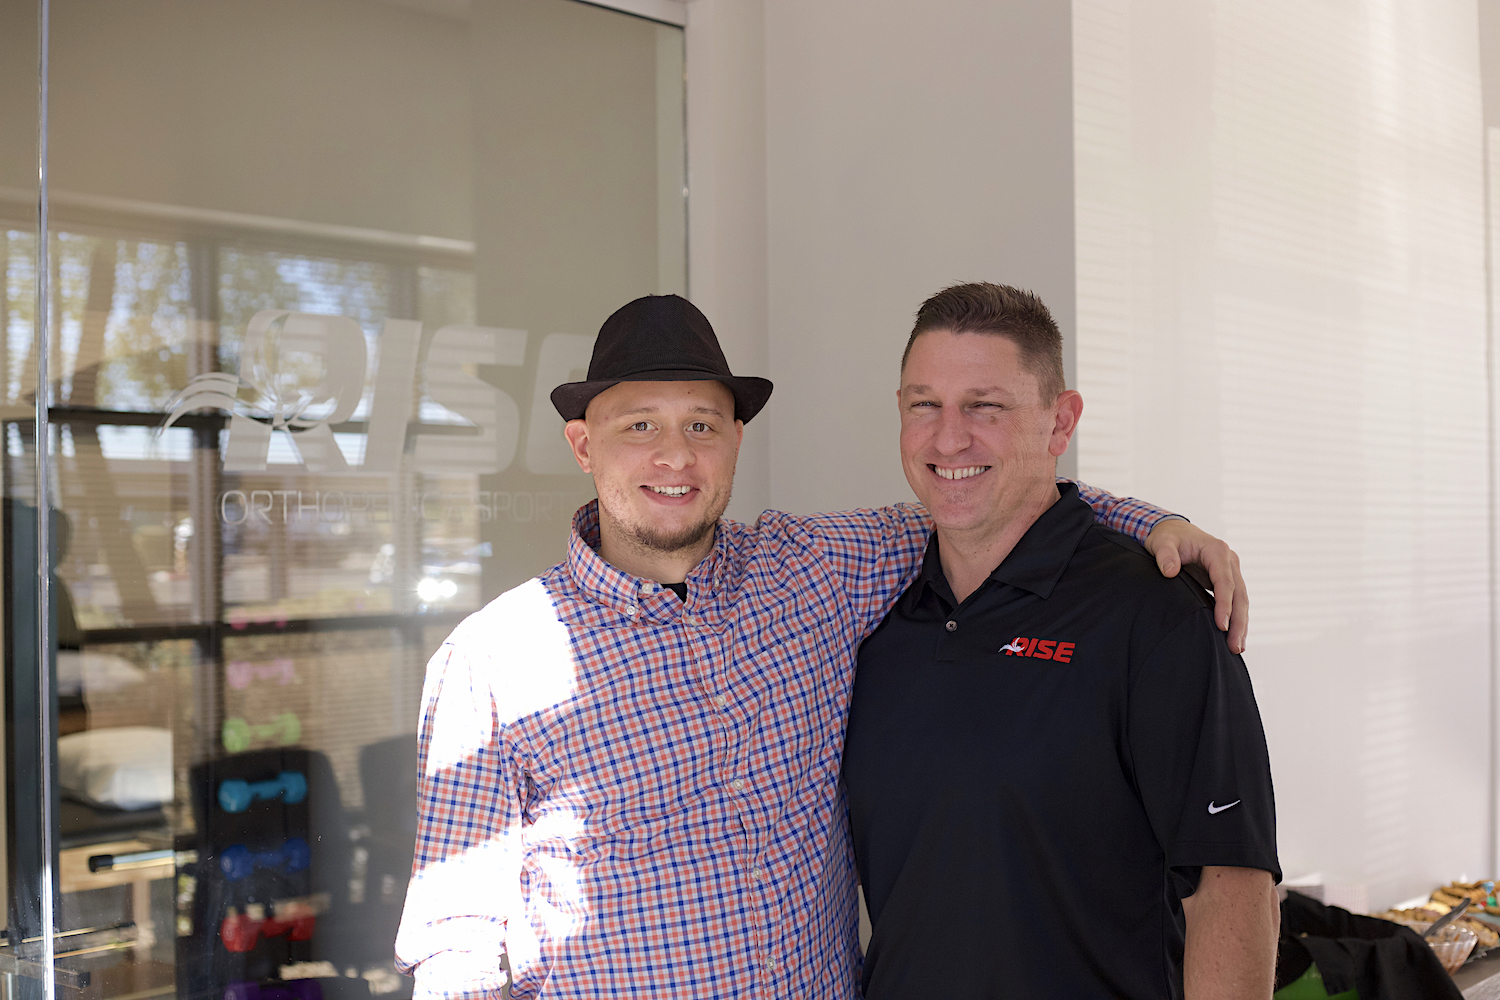 brand-development-services-in-west-phoenix-during-launch-of-rise-orthopedic-and-sports-pt-in-surprise-az-picture-of-jordan-trask-with-client-and-owner-mark-jagodzinski